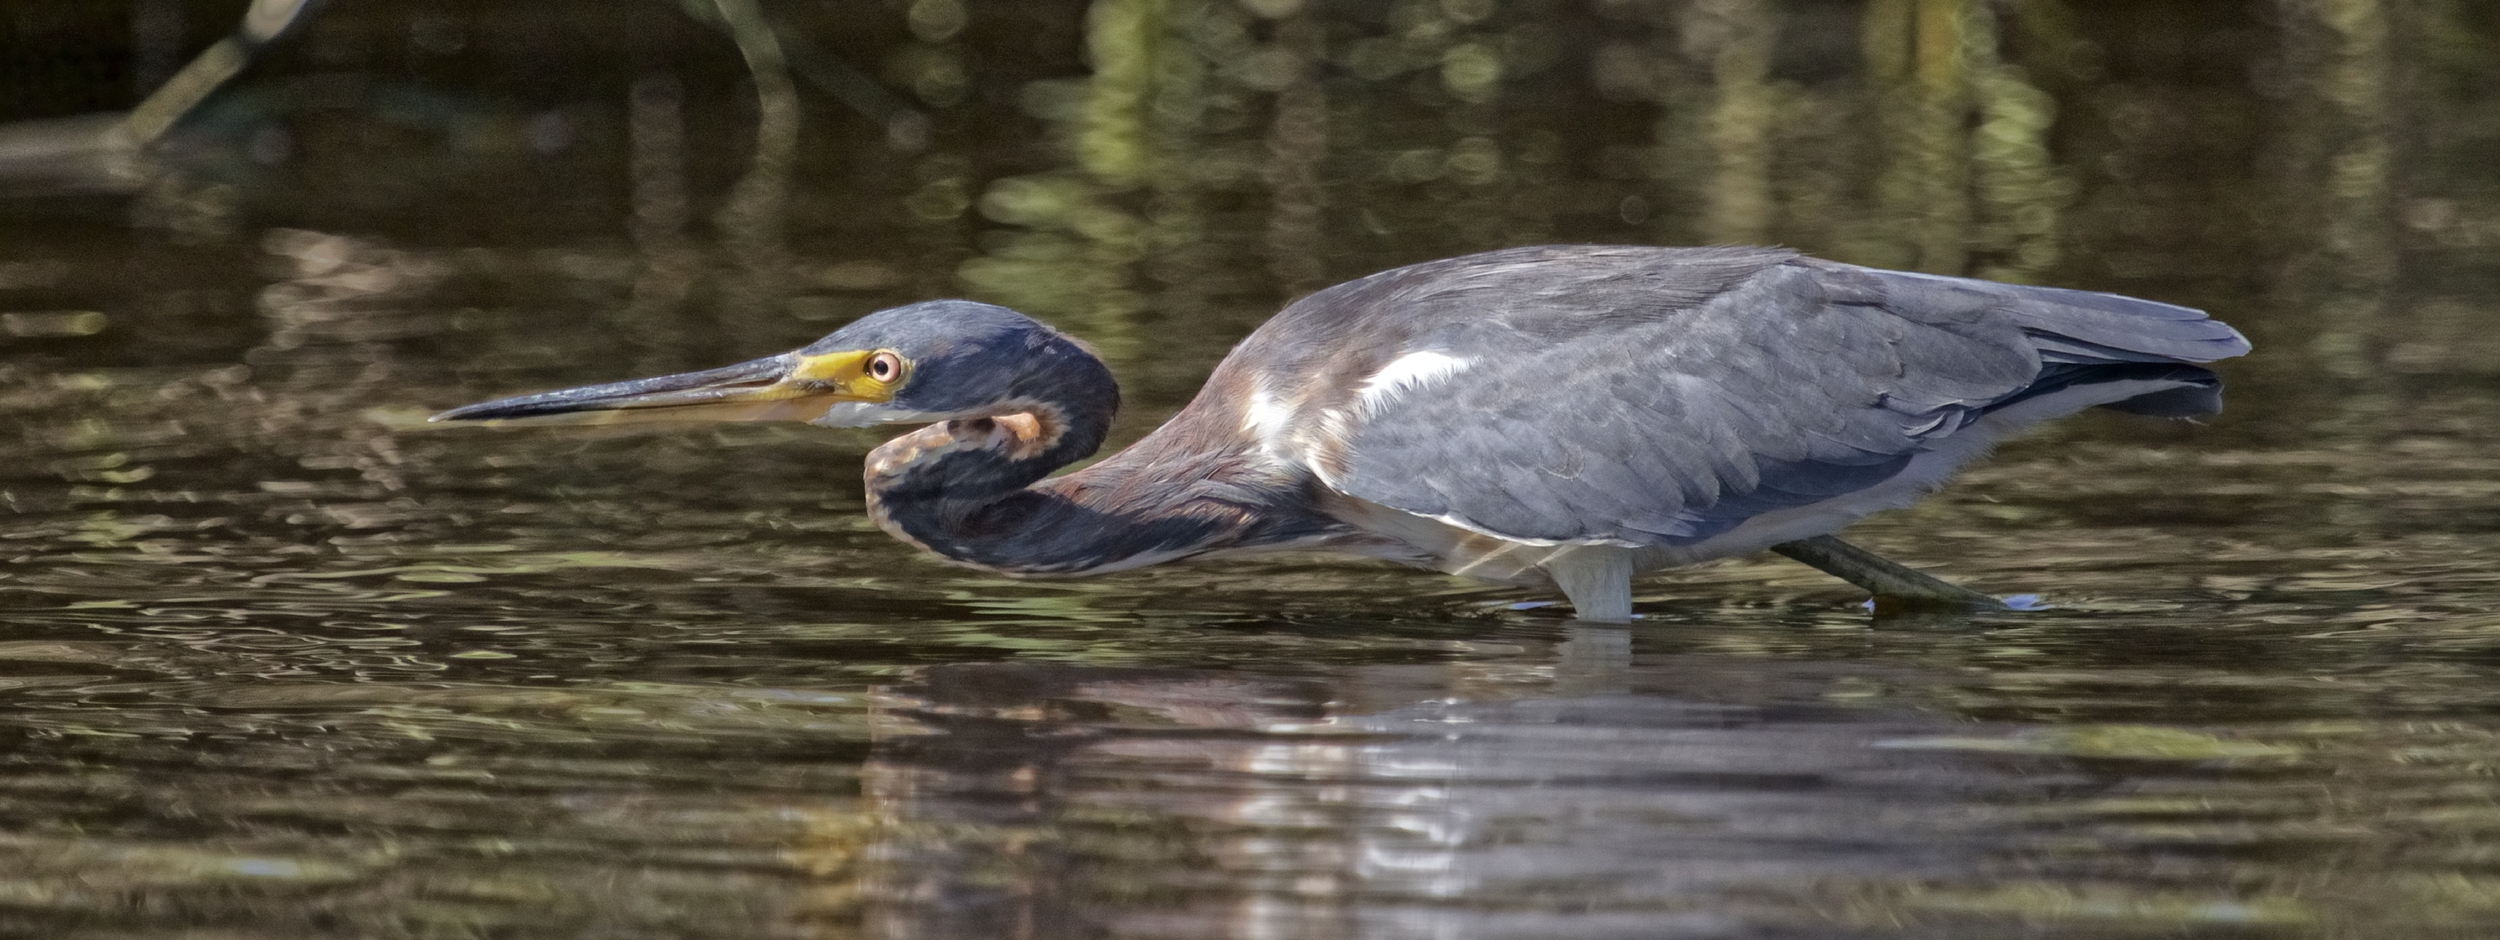 The Tricolored Heron begins to stalk slowly..it pauses..